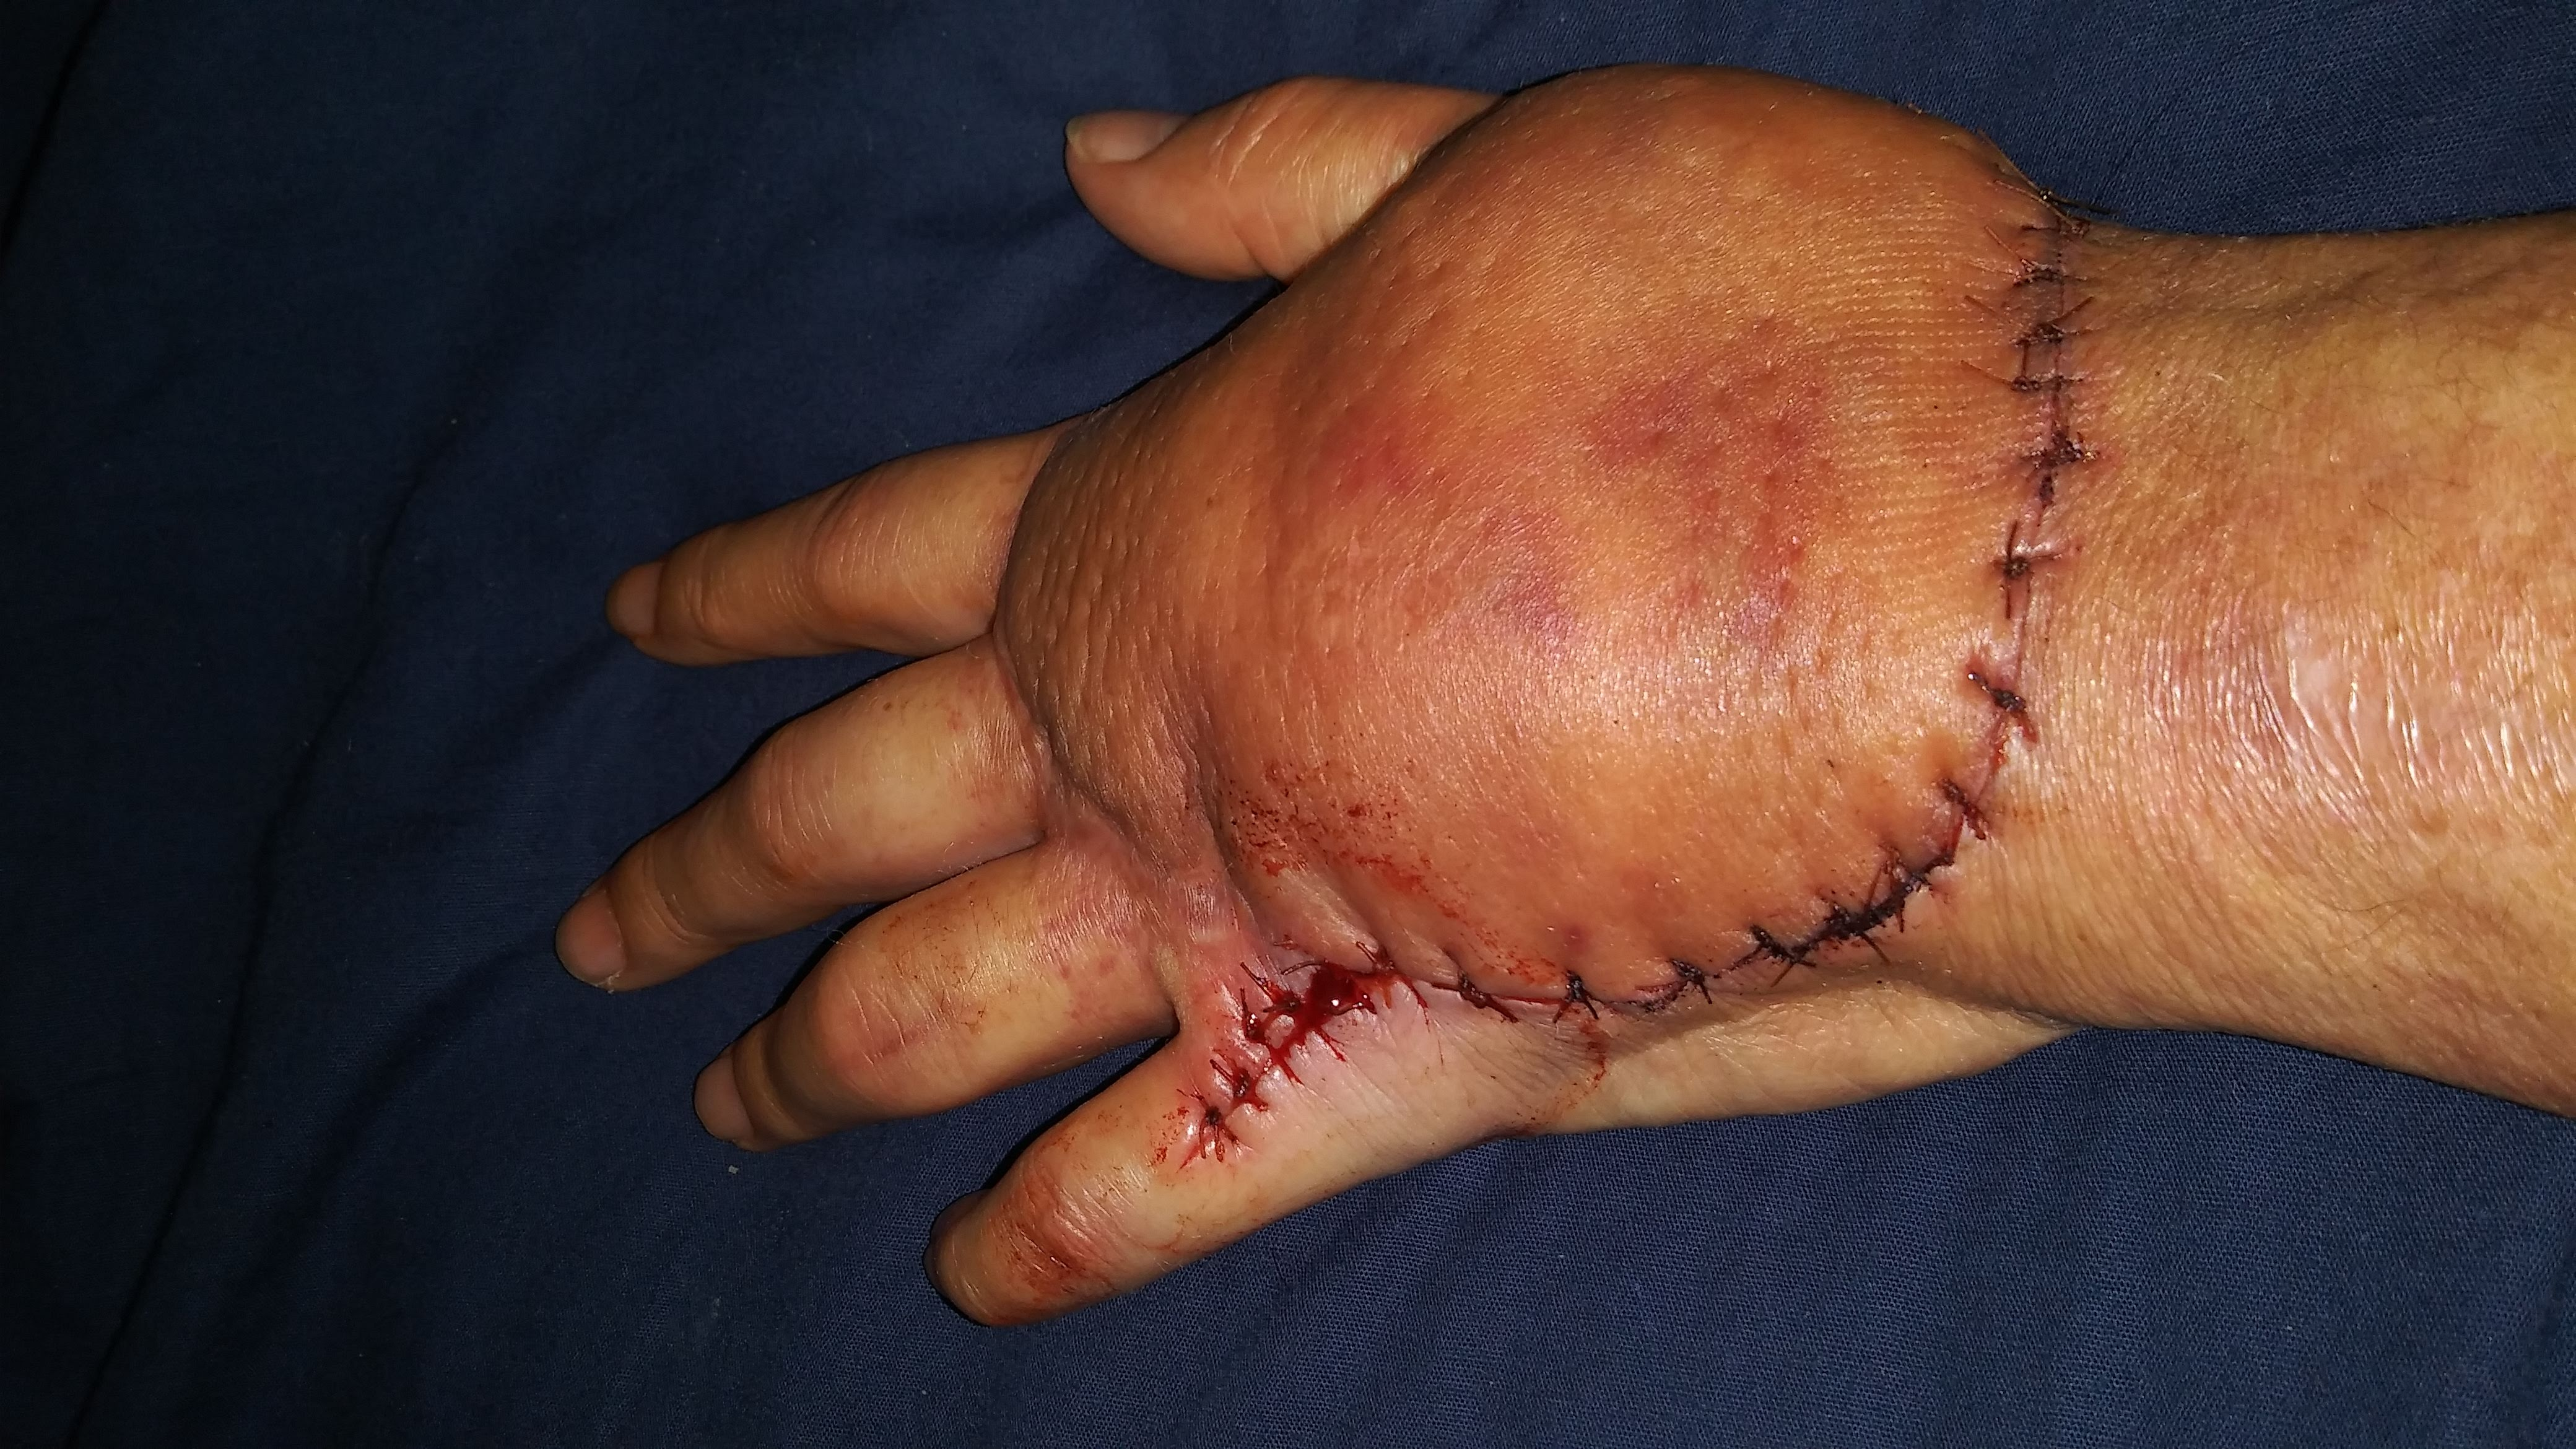 Heather Harbottle's swollen hand with stitches after surgery.